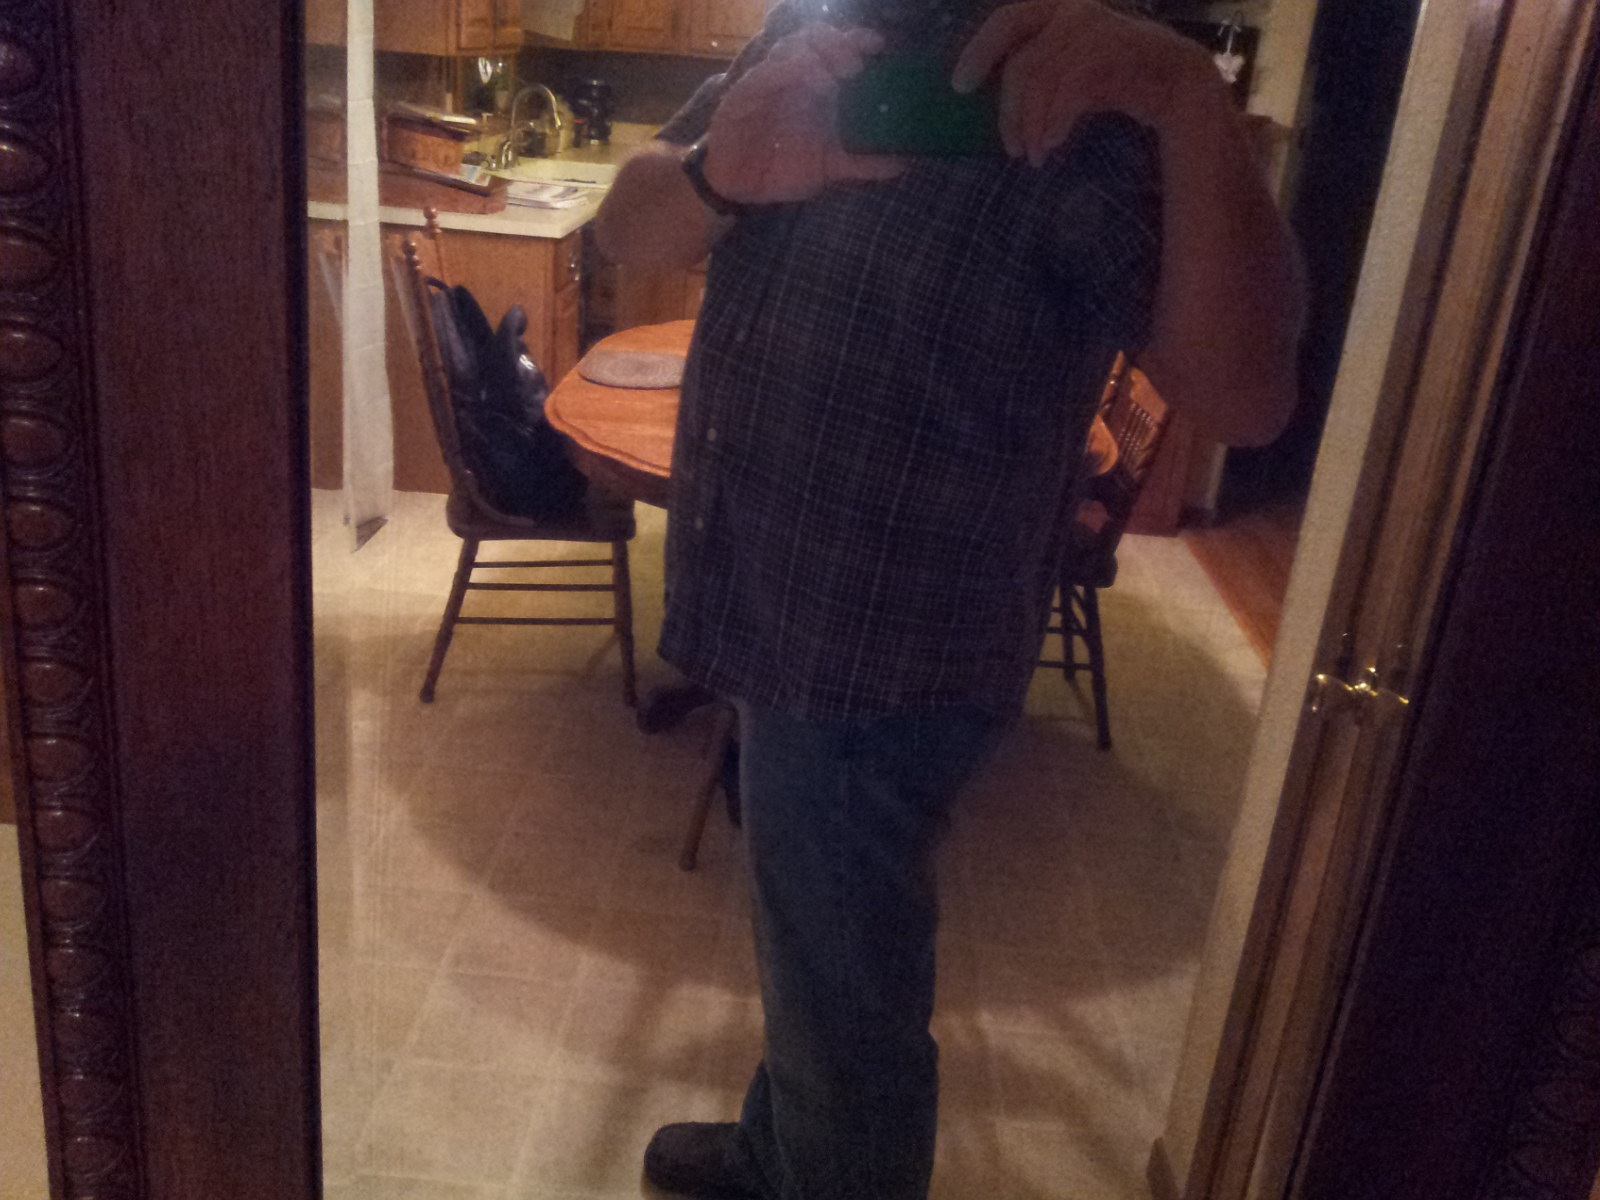 Let's See Your Pic's - How You Carry Concealed.-2012-11-20_05.52.19.jpg